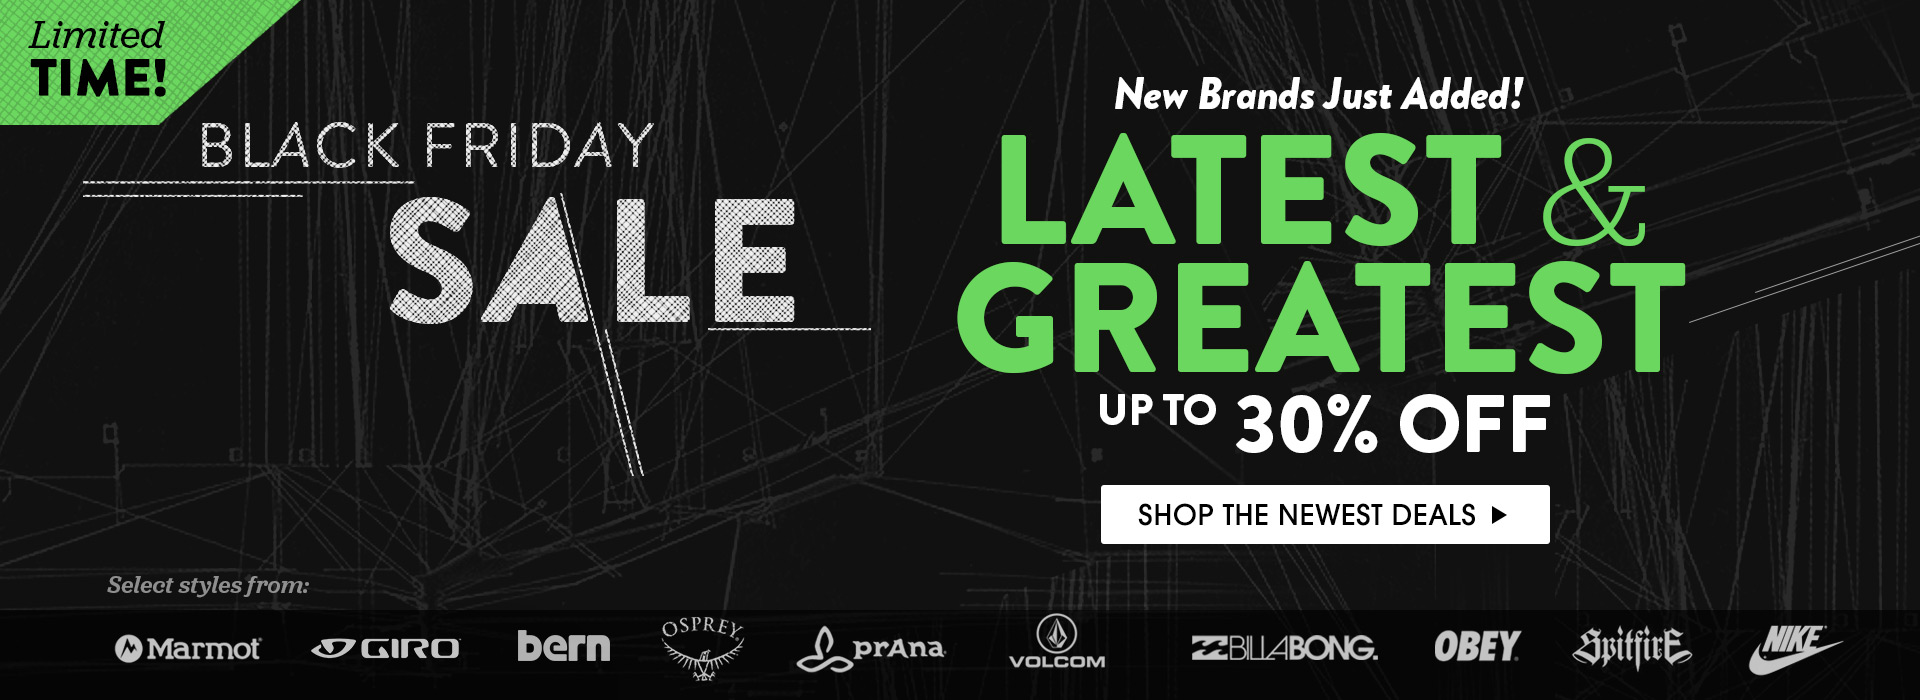 Black Friday. Up to 30% off The Newest Gear. Lowest Prices Of The Season. Shop Now!